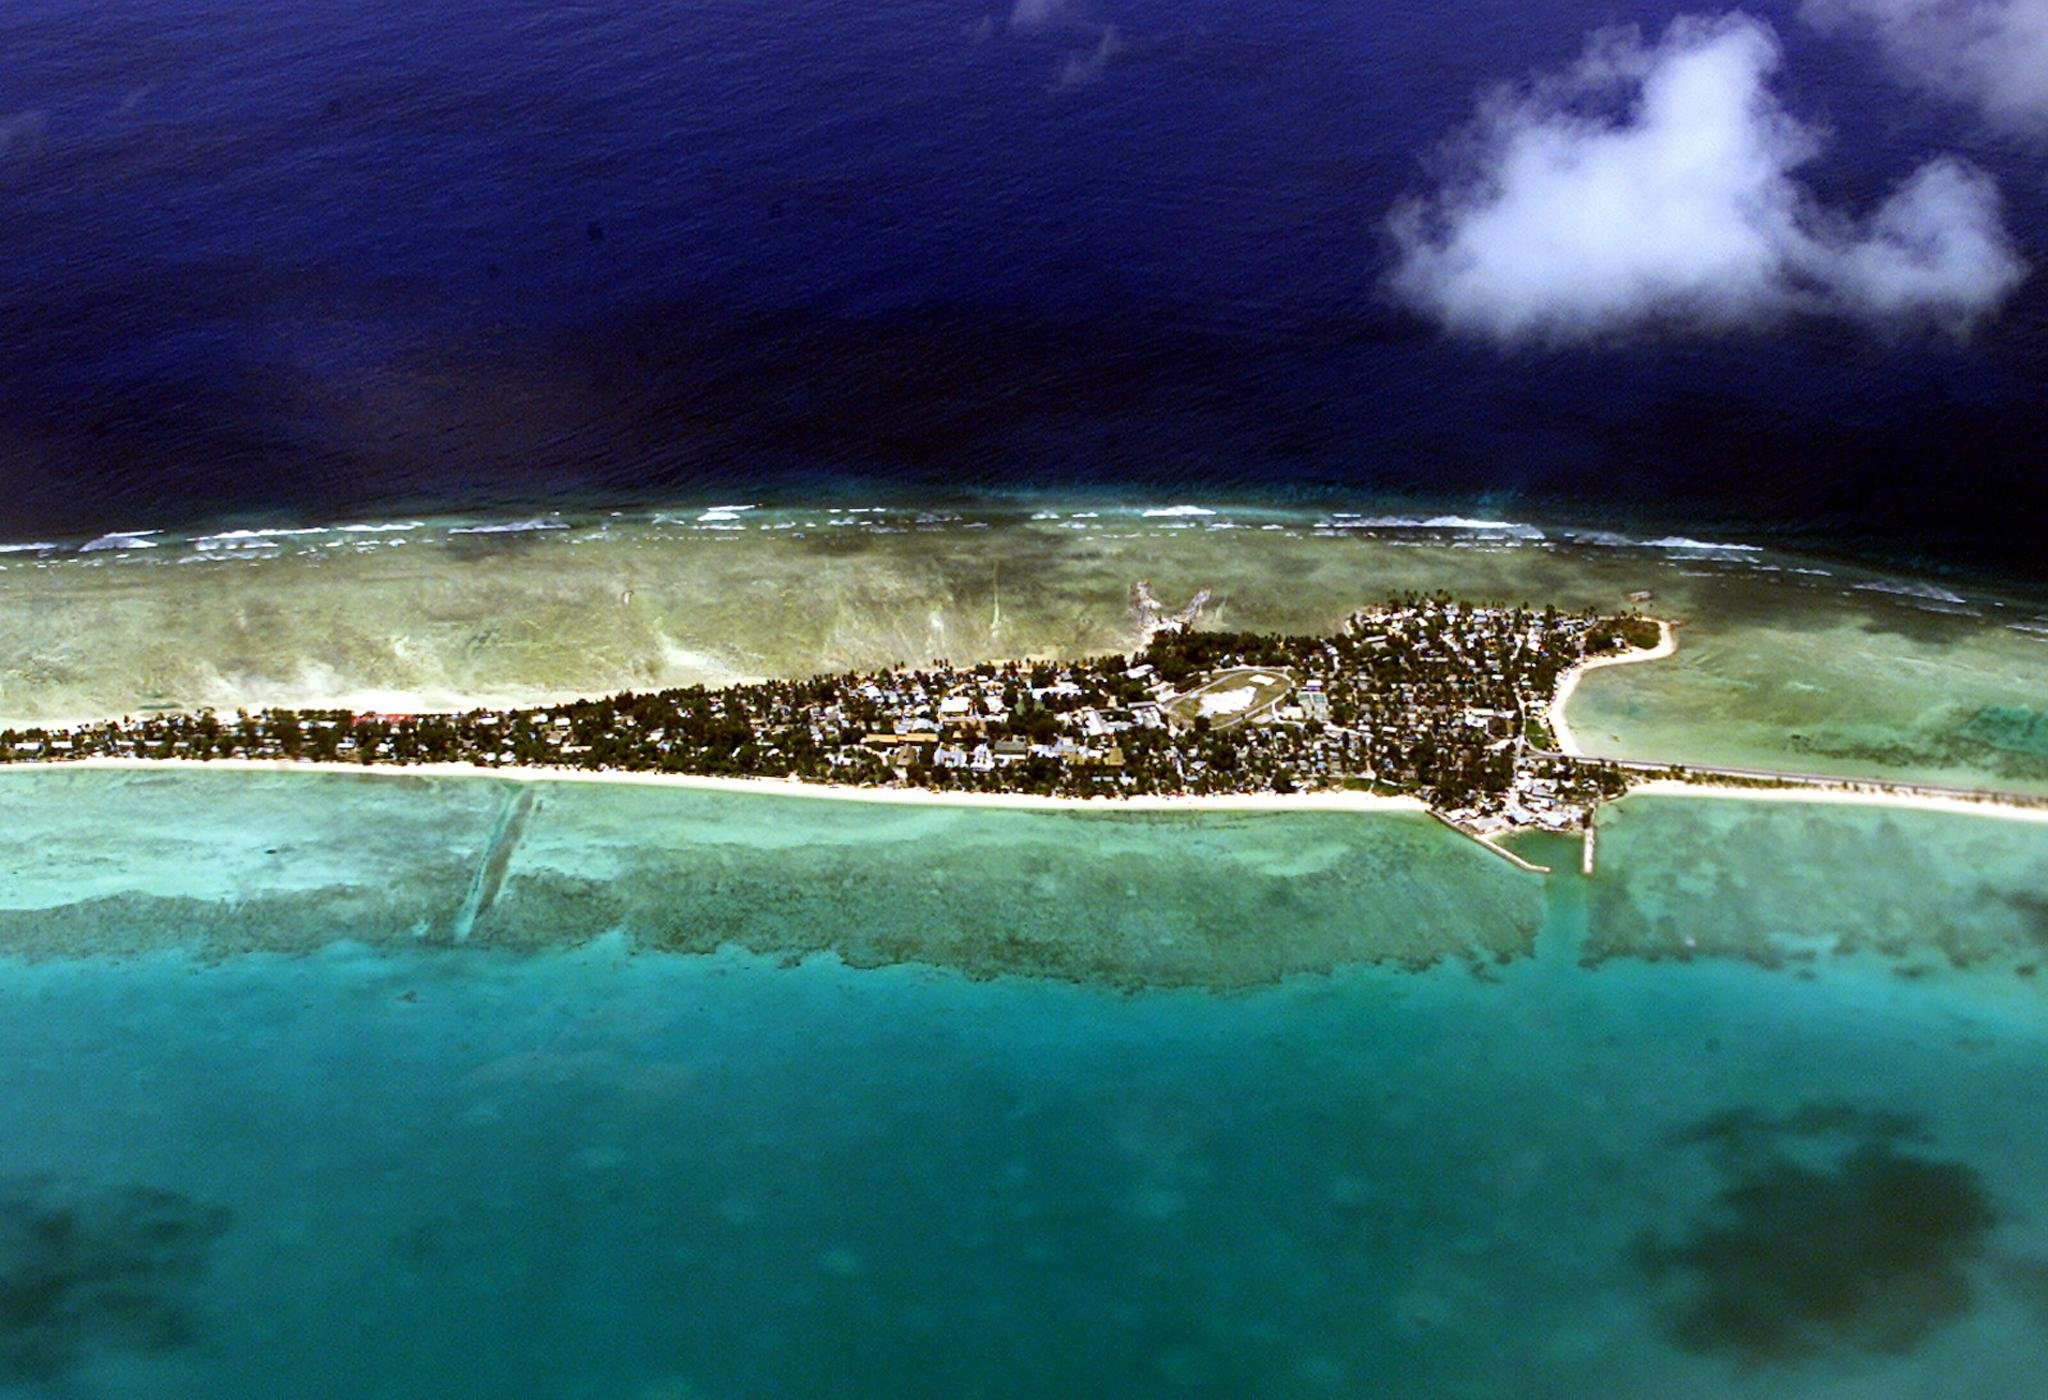 The Tarawa atoll, capital of the vast archipelago nation of Kiribati, appears in this file photo taken in September 2001. (Credit: TORSTEN BLACKWOOD/AFP via Getty Images)